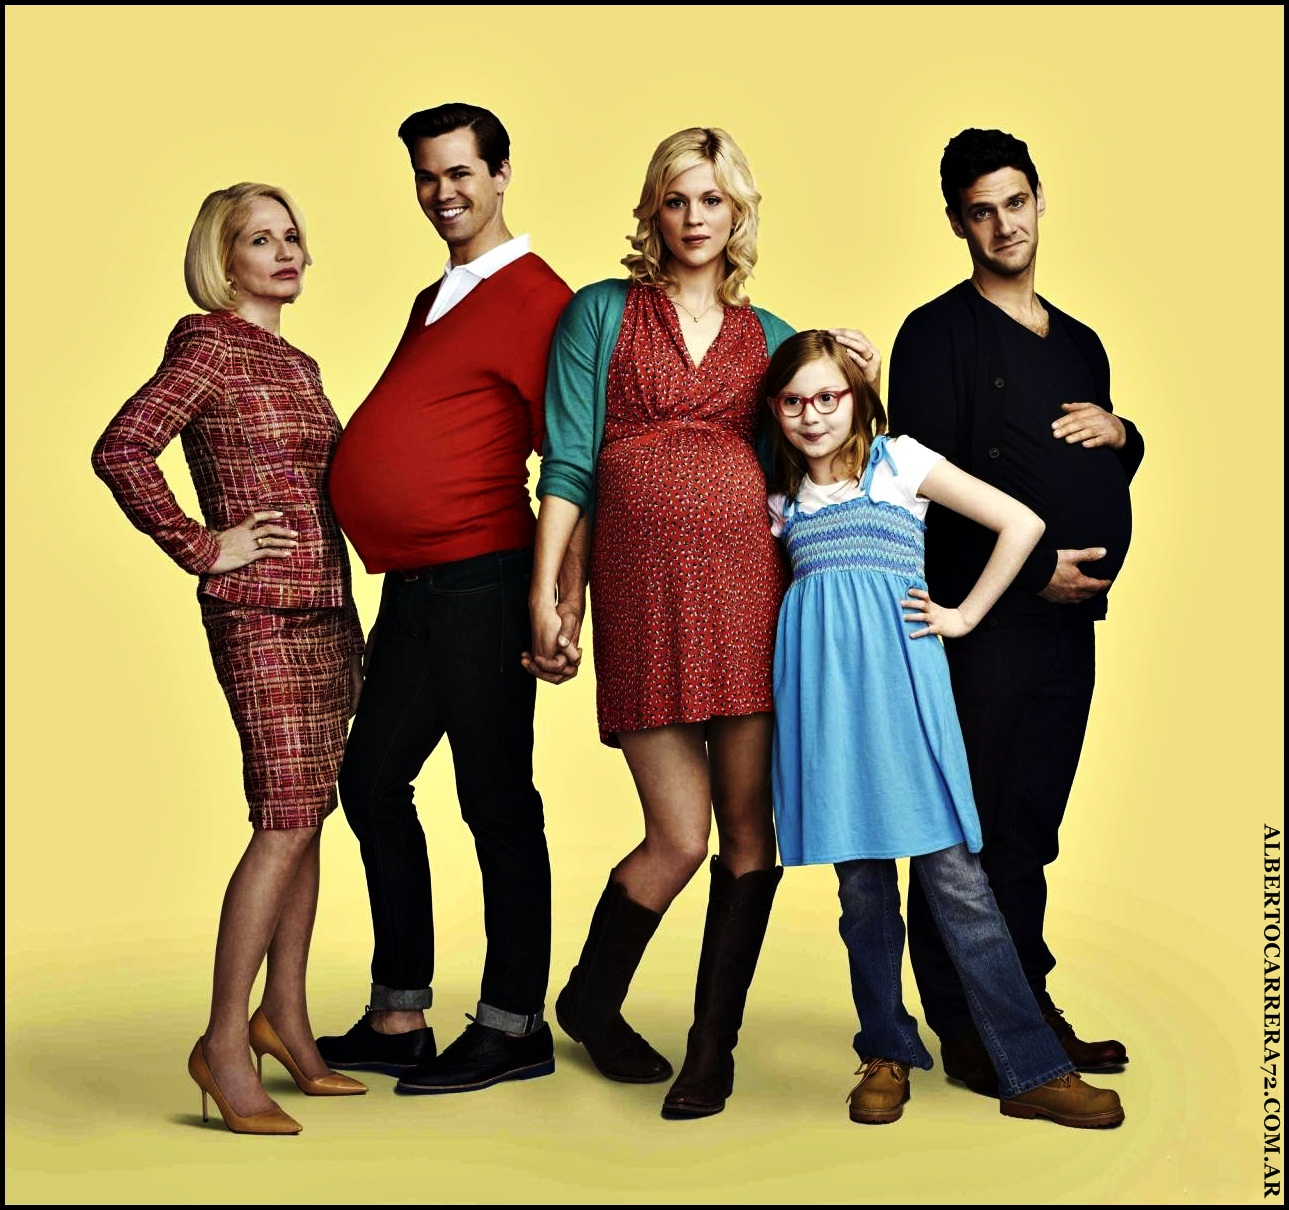 http://4.bp.blogspot.com/-RX5CTheWDg8/UDto-R-H_7I/AAAAAAAAb_M/aooDBmz0GWk/s1600/The-New-Normal-TV-Series.jpg